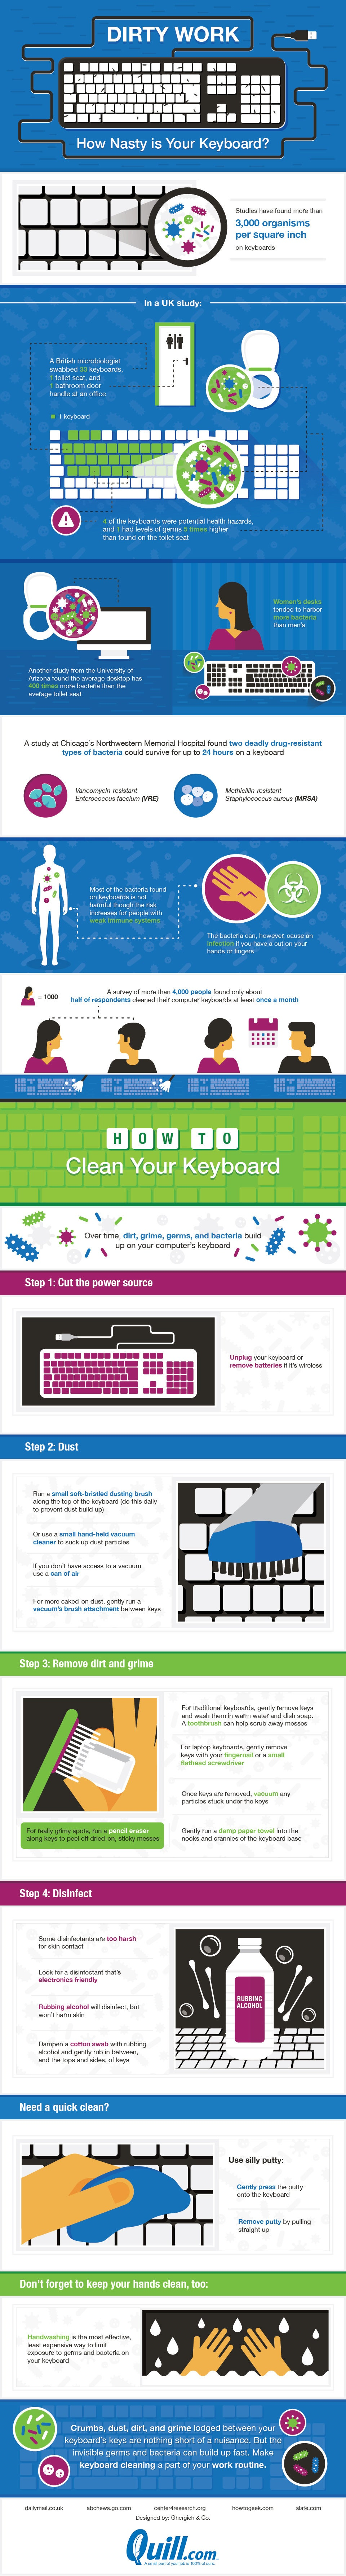 This Graphic Shows How Nasty Your Keyboard Can Get (and How to Clean It)